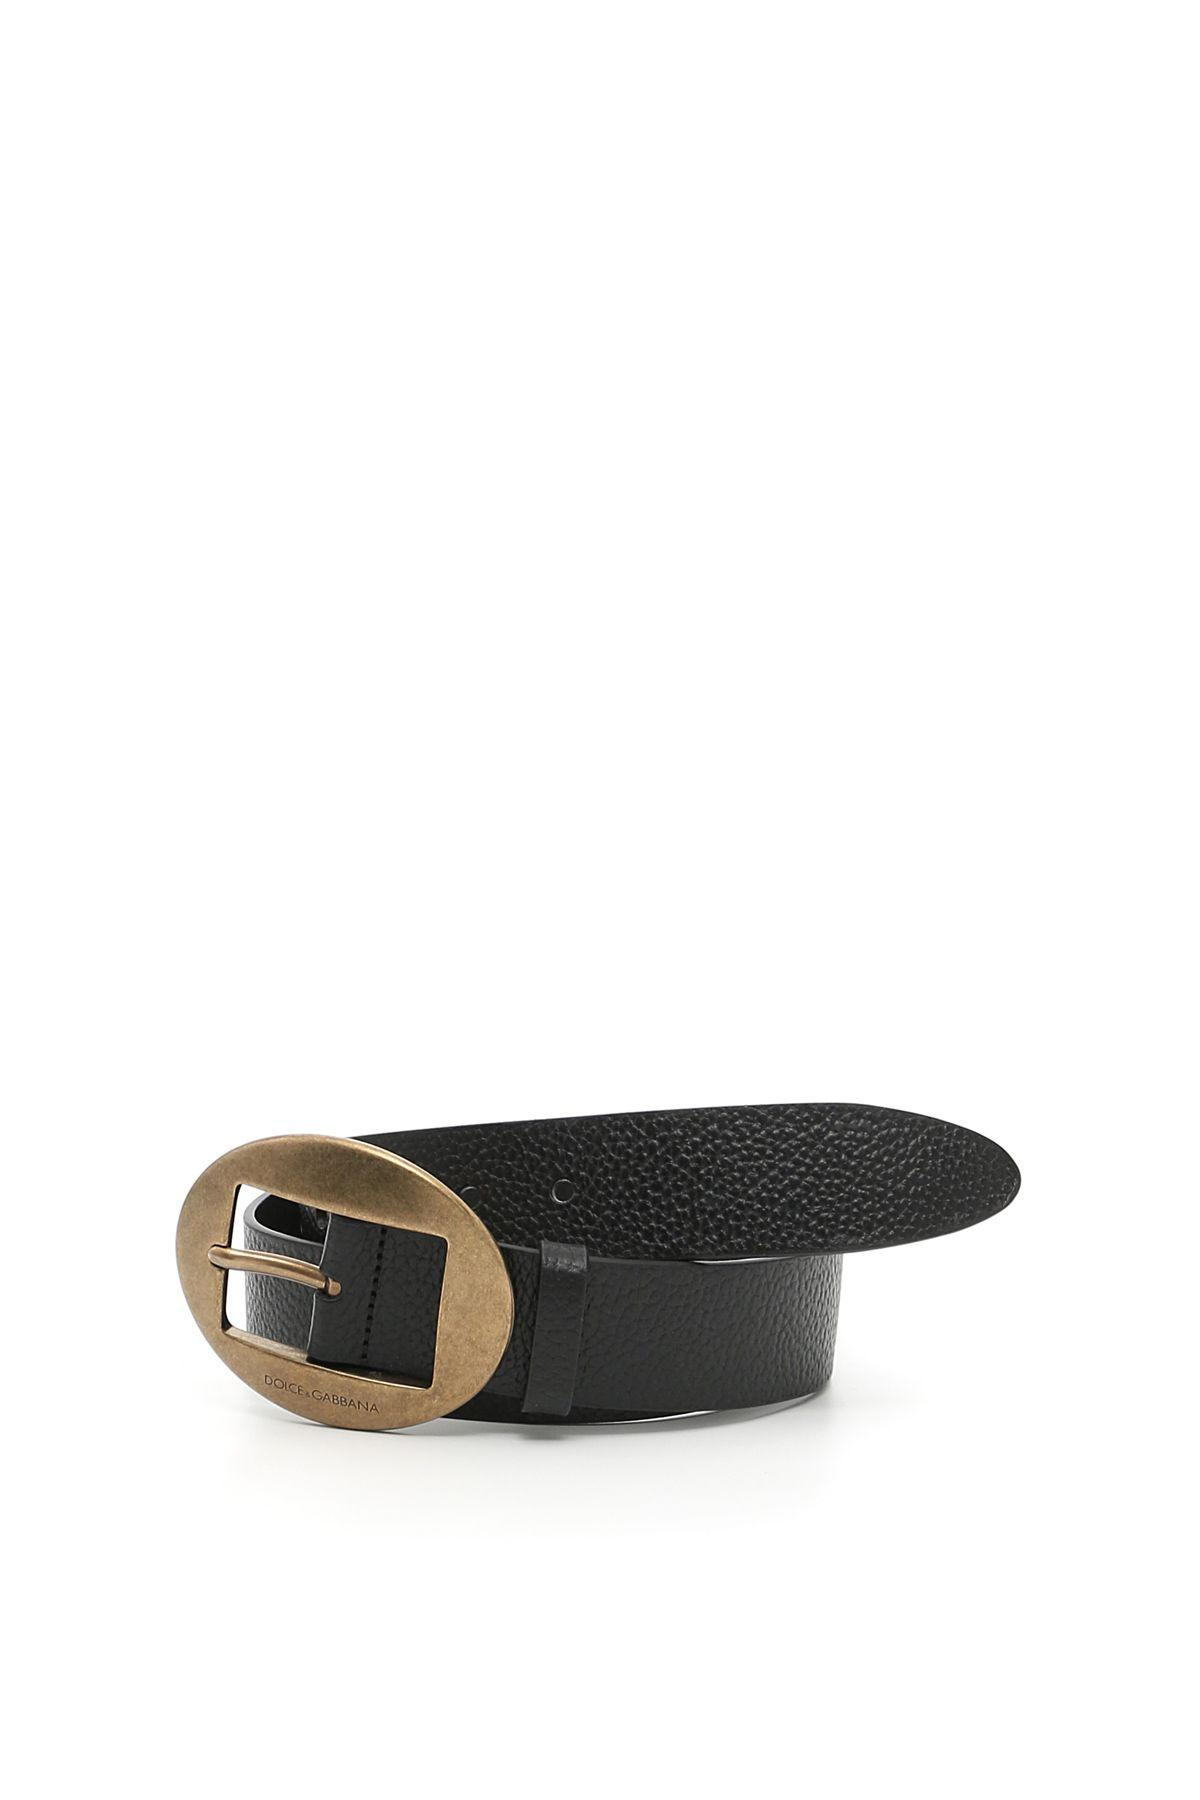 Dolce & Gabbana Leather Belt In Neronero